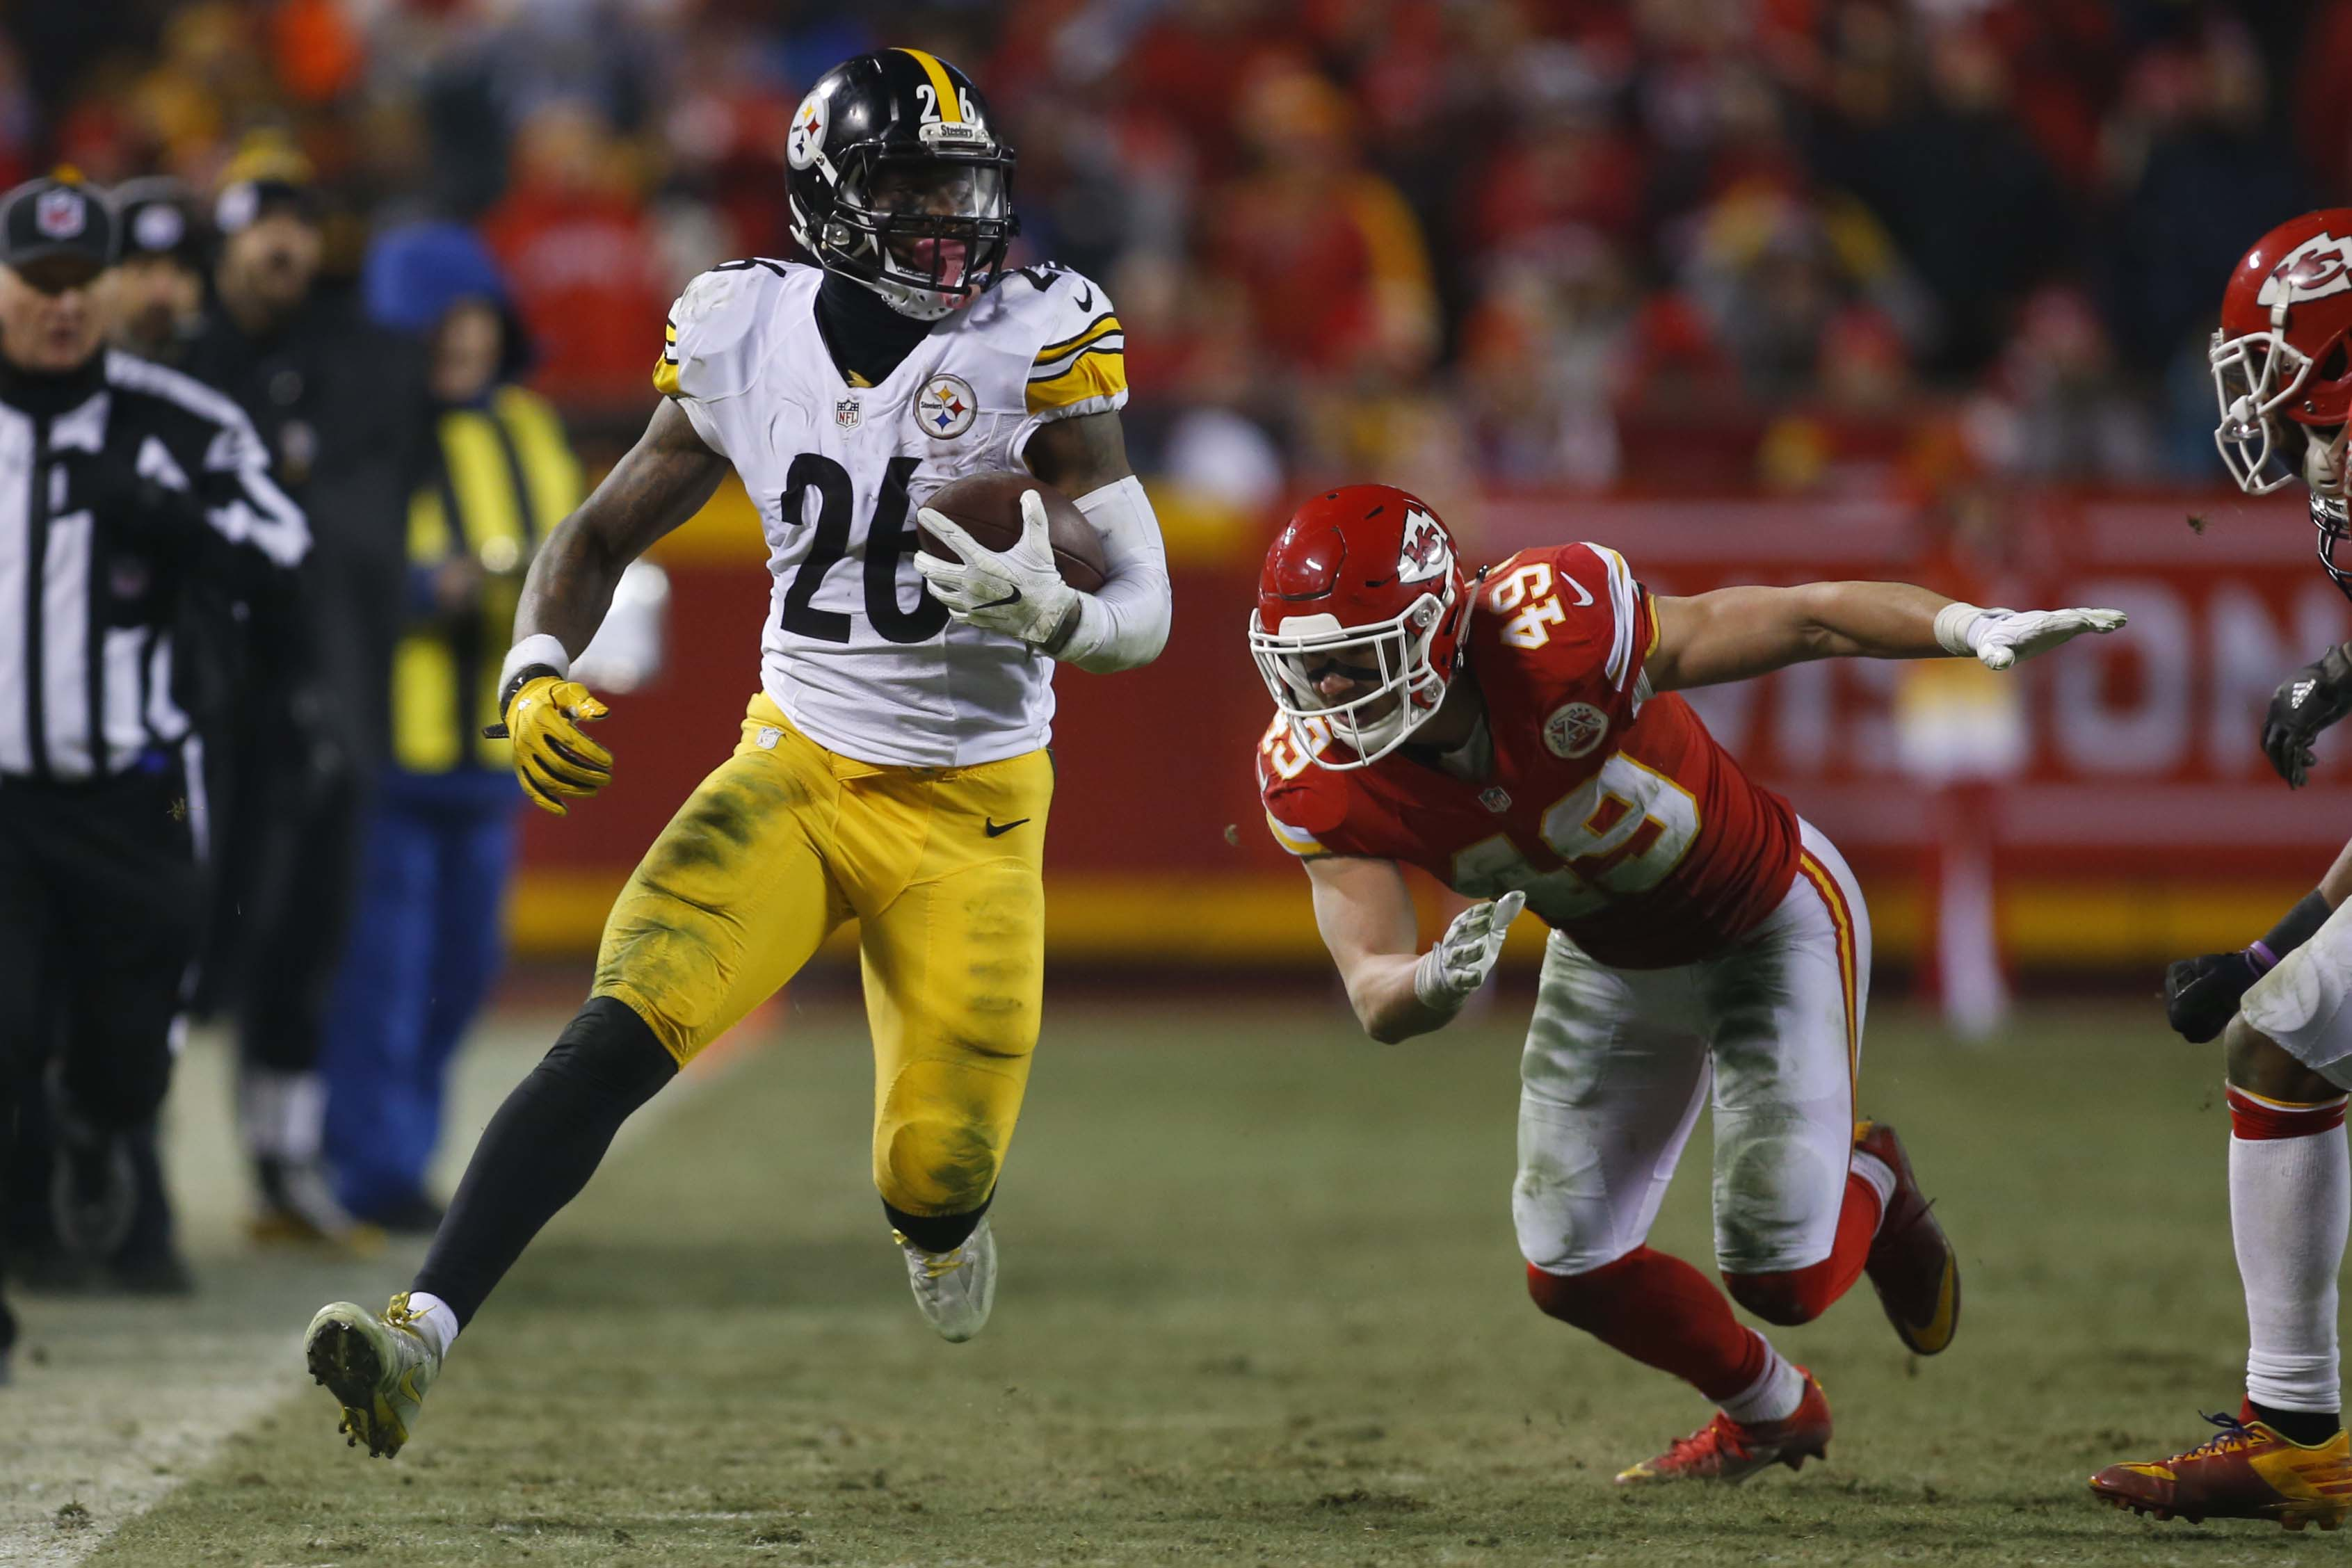 9813051-nfl-afc-divisional-pittsburgh-steelers-at-kansas-city-chiefs